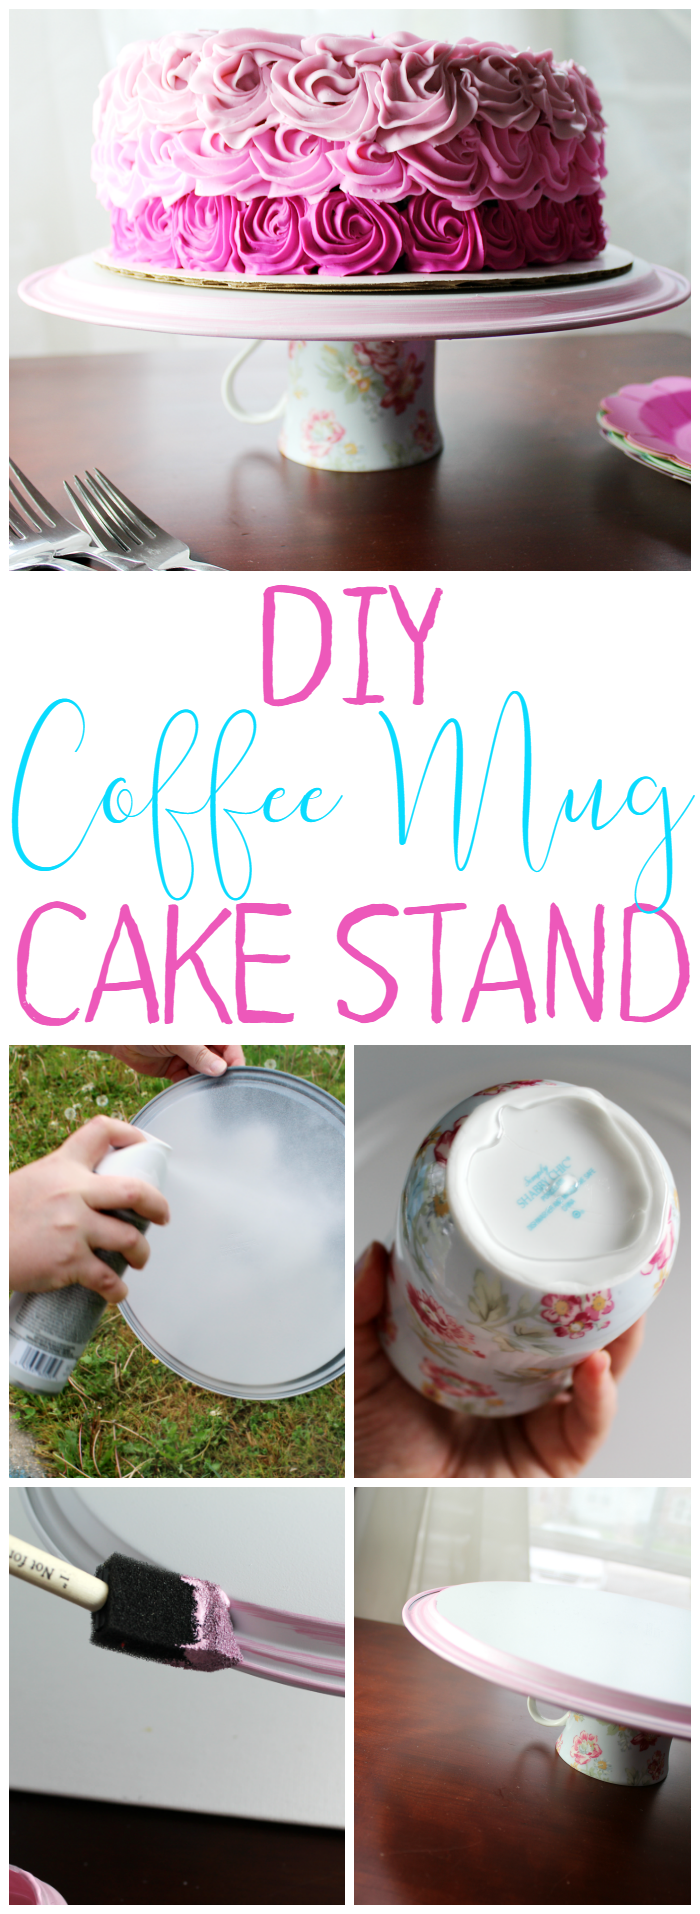 DIY Coffee Mug Cake Stand is easy to make and will make a great gift!